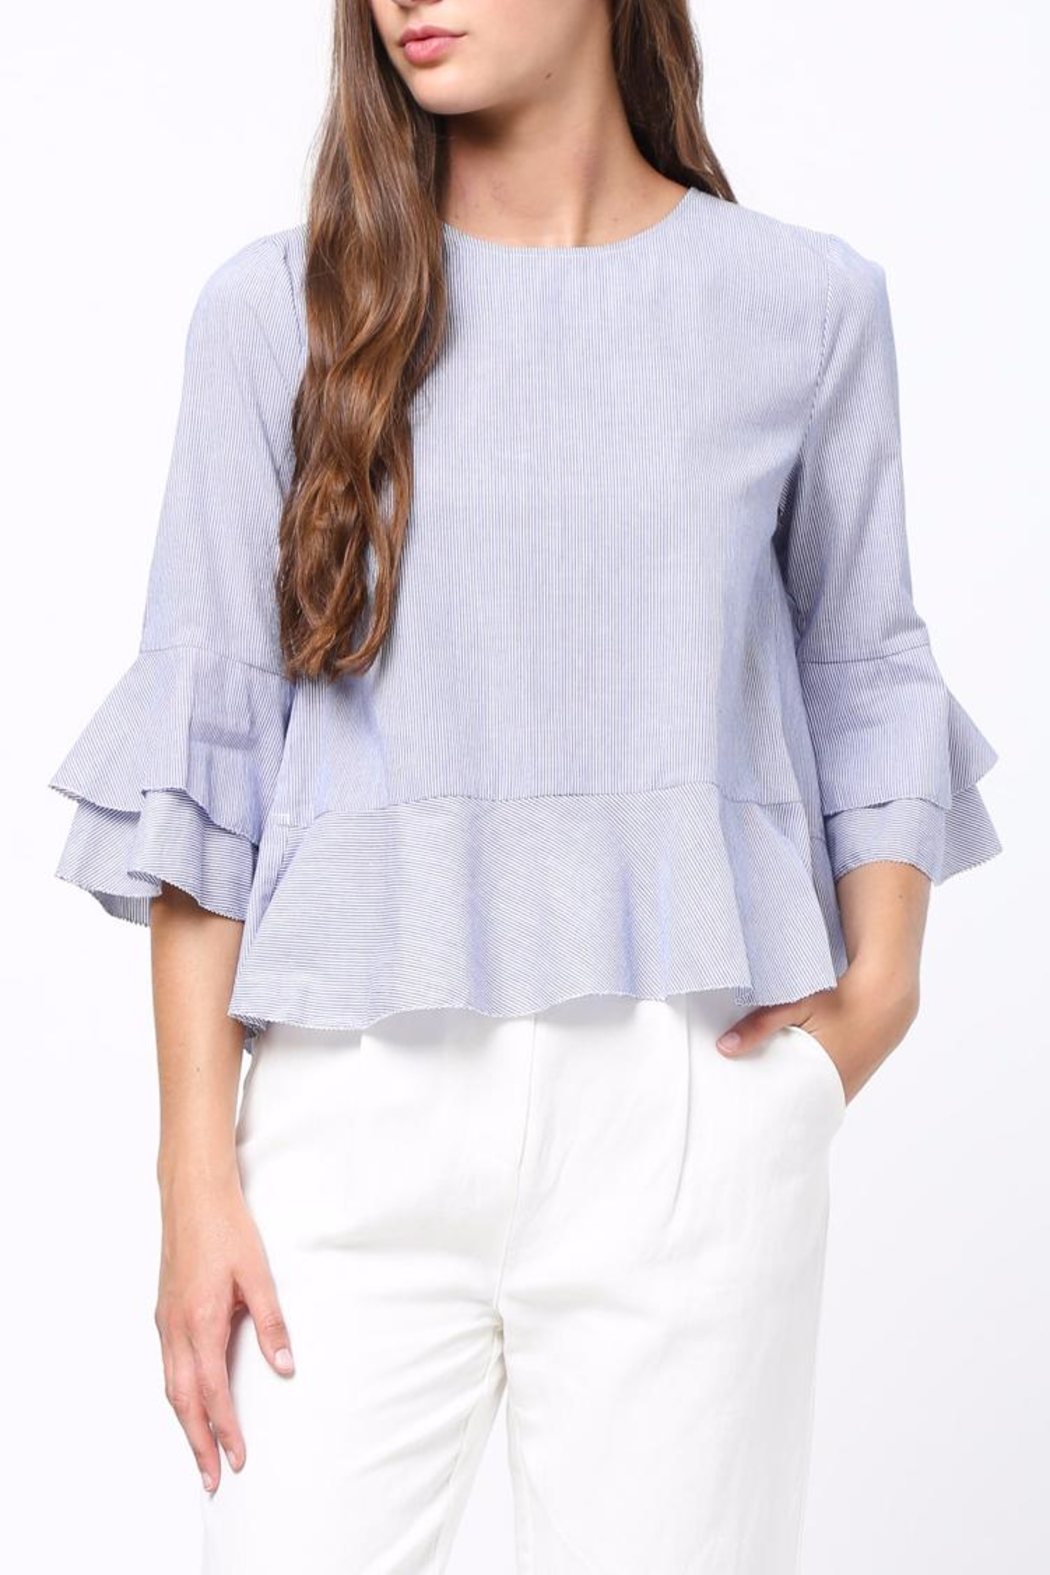 Movint Ruffle Detaliled Top - Front Cropped Image